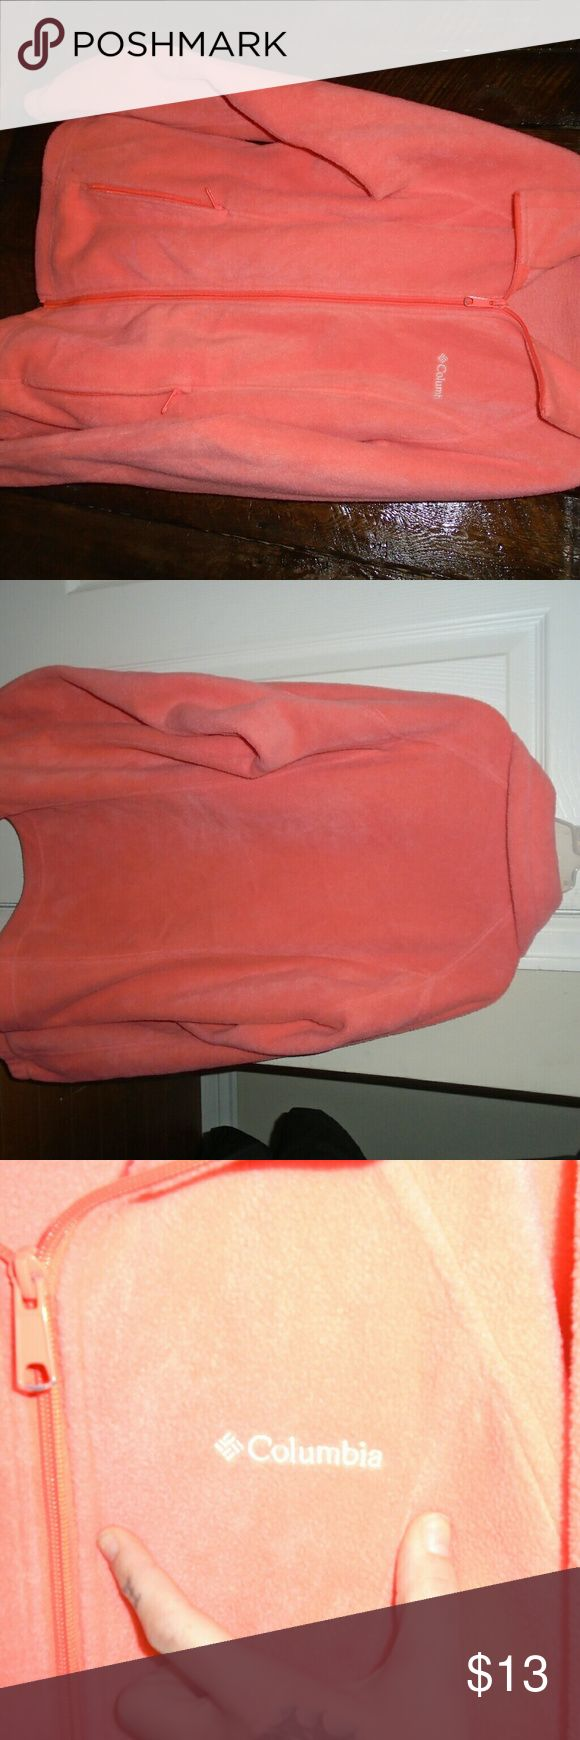 Columbia zip up jacket Women's small. Excellent used condition. Orange/Pink color. Columbia Jackets & Coats